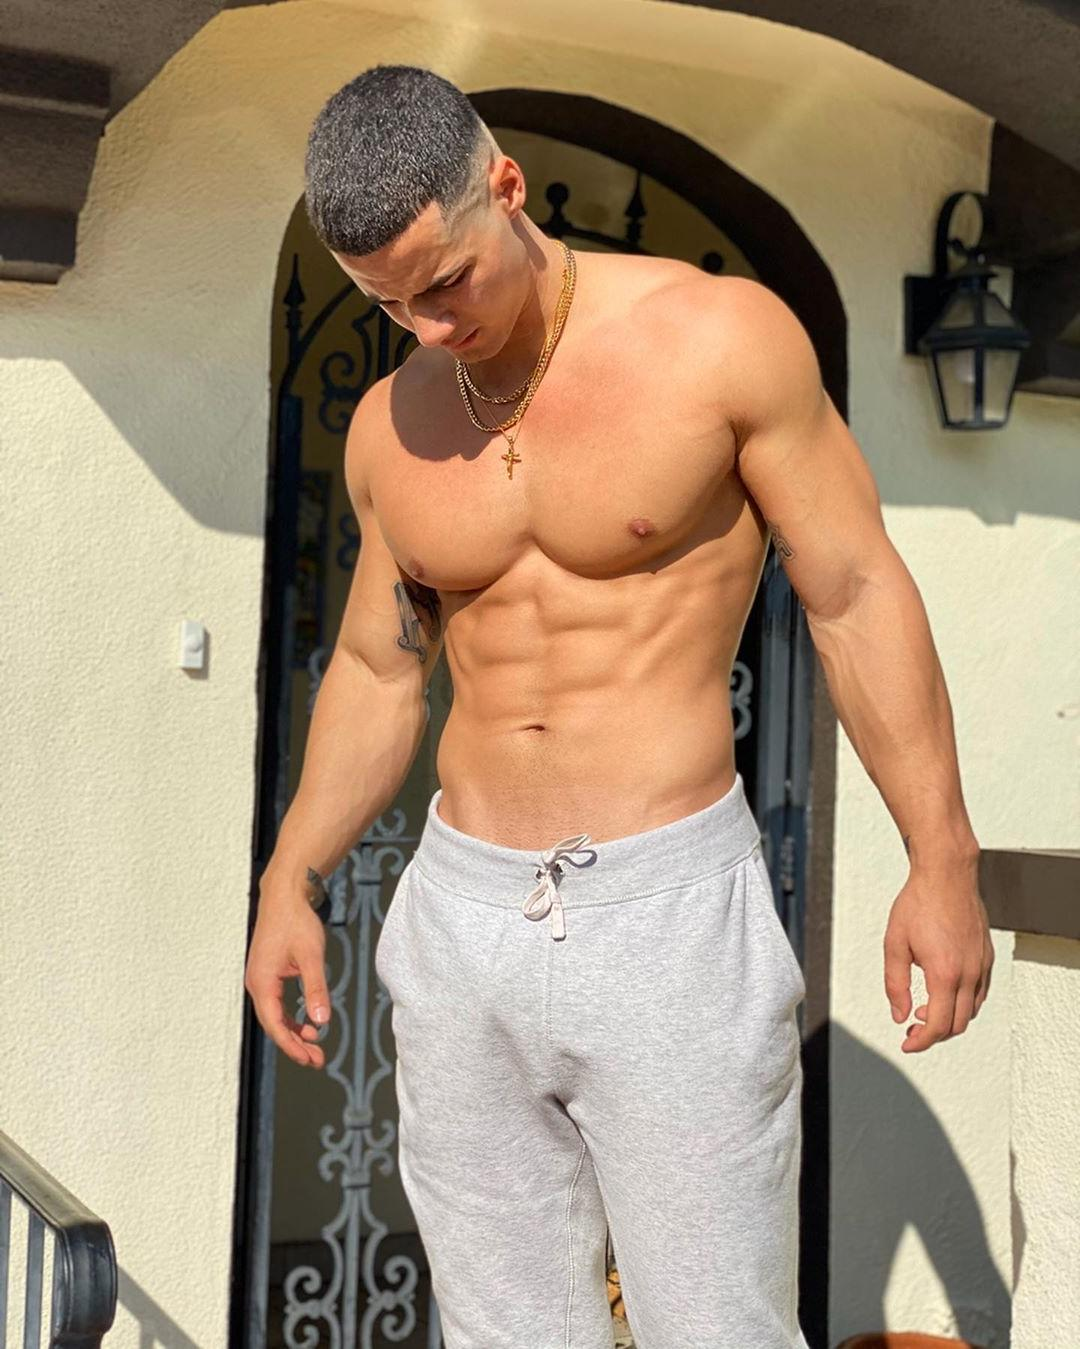 handsome-neighbor-muscle-pecs-shirtless-fit-body-abs-bad-boy